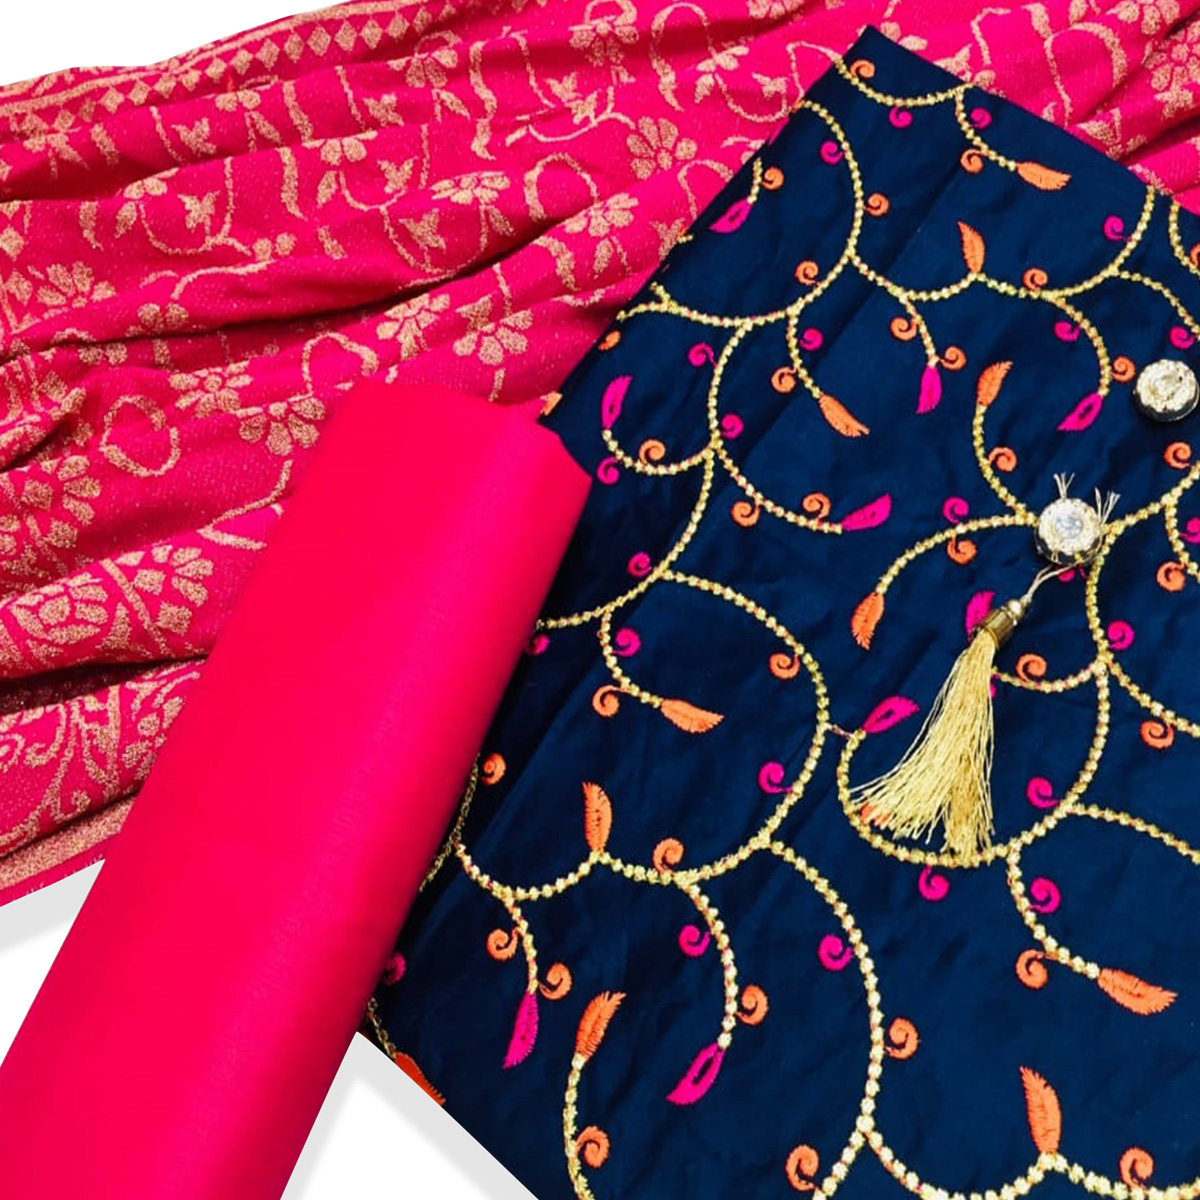 Desiring Navy Blue Colored Partywear Embroidered Cotton Dress Material